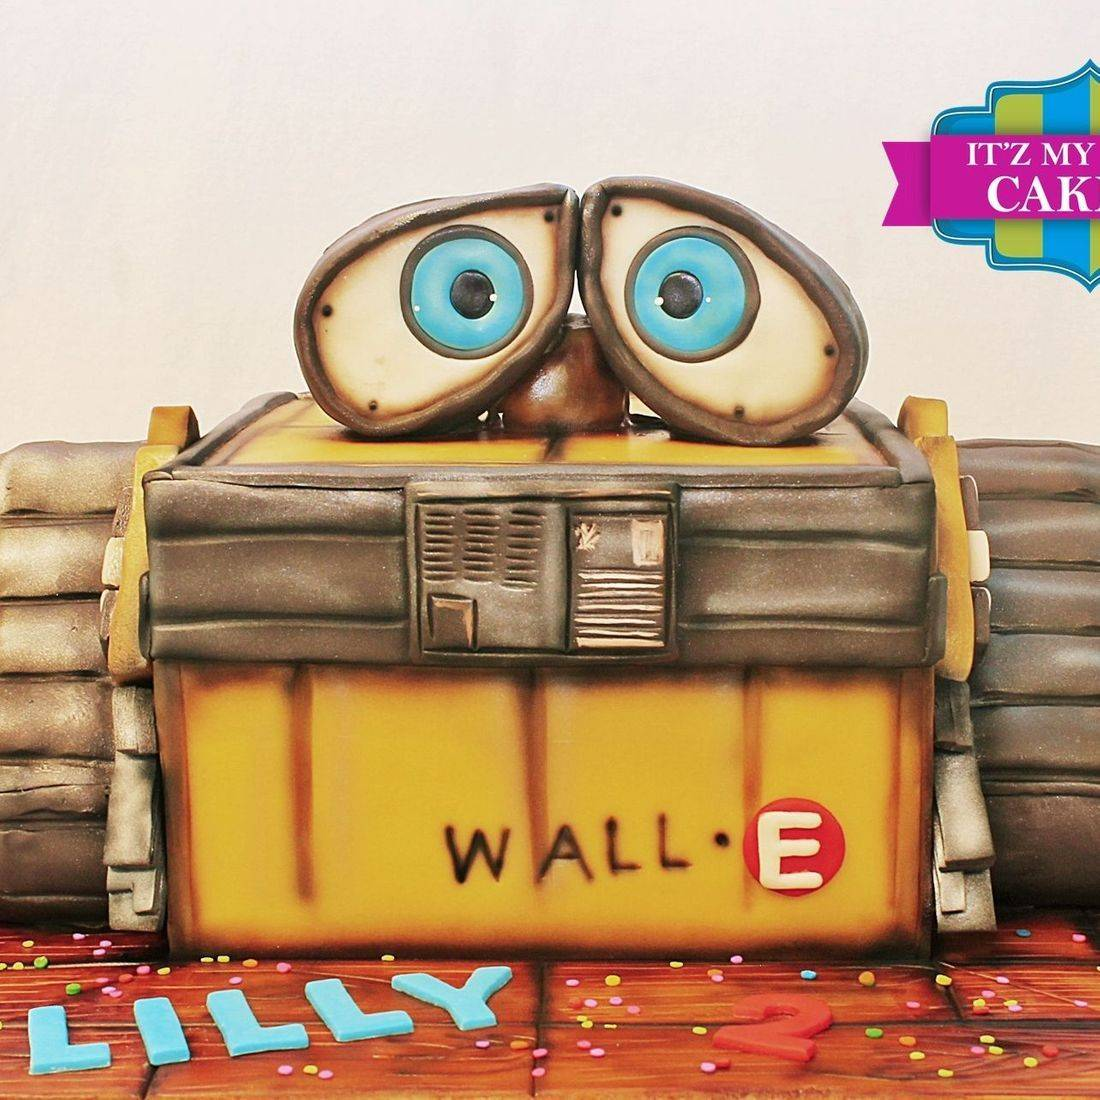 WallE Cake Dimensional Cake Milwaukee